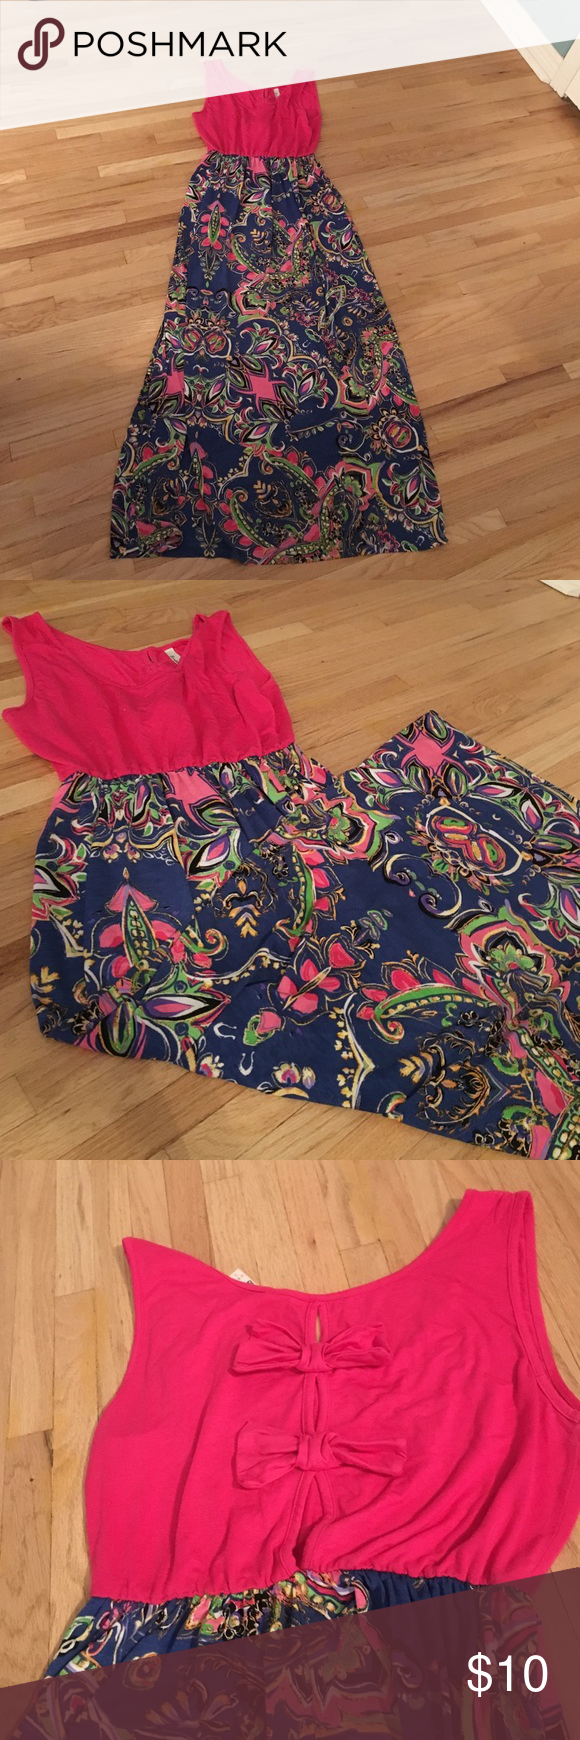 Large sundress Cute, gently worn sundress. Emerald brand, size large. Bow accents to the back. Royal blue bottom with brunt. Magenta pink top. Dresses Maxi